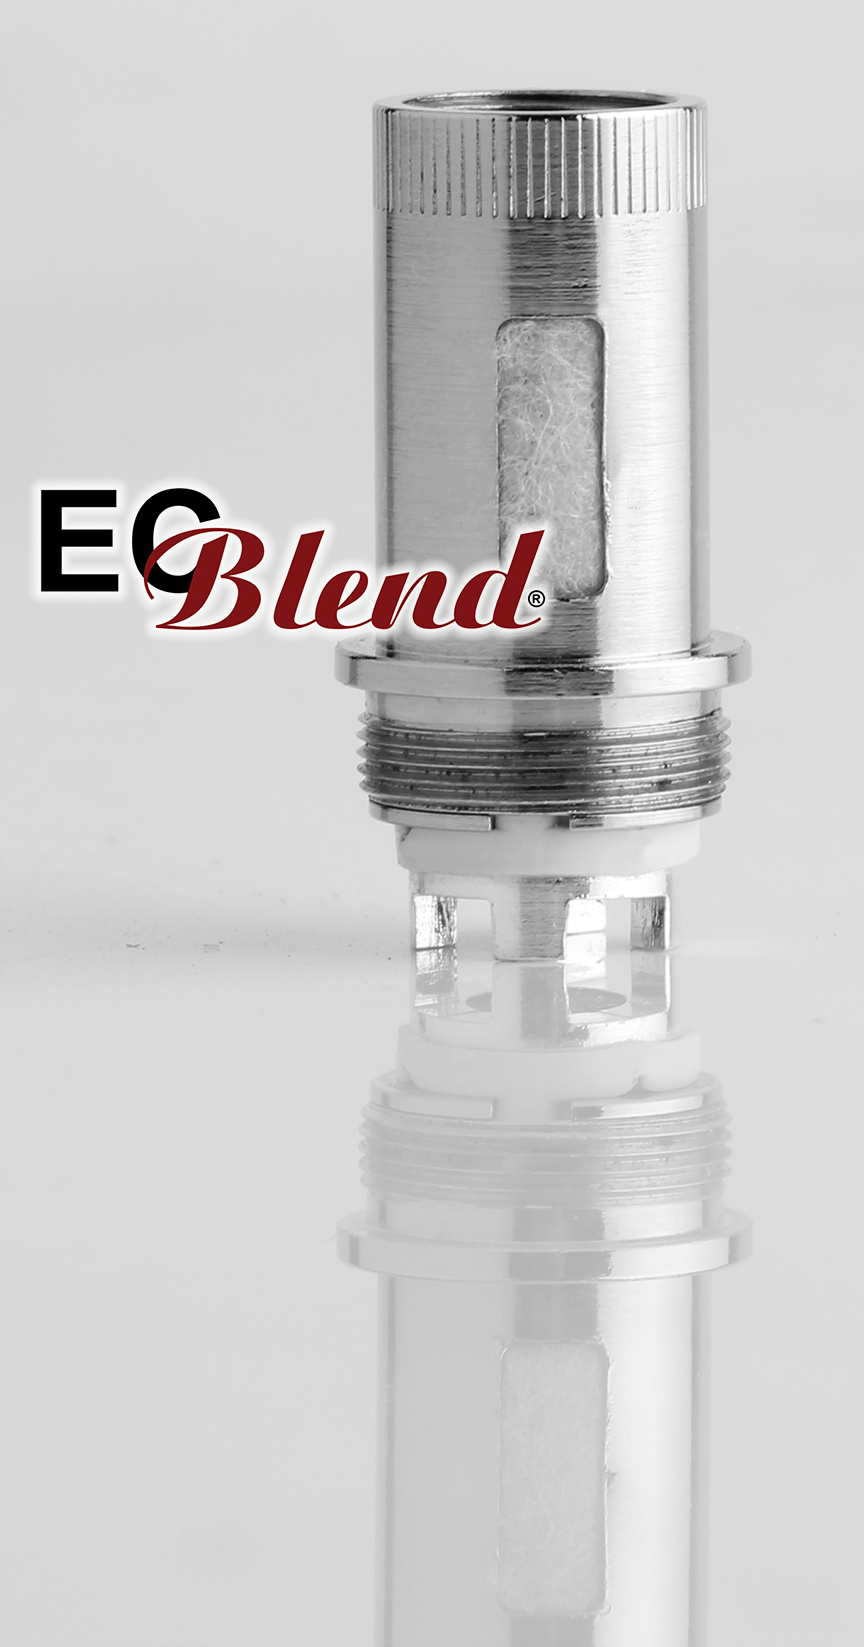 Clearomizer Replacement Head - SmokTech - VCT Pro E2 Coils - at ECBlend